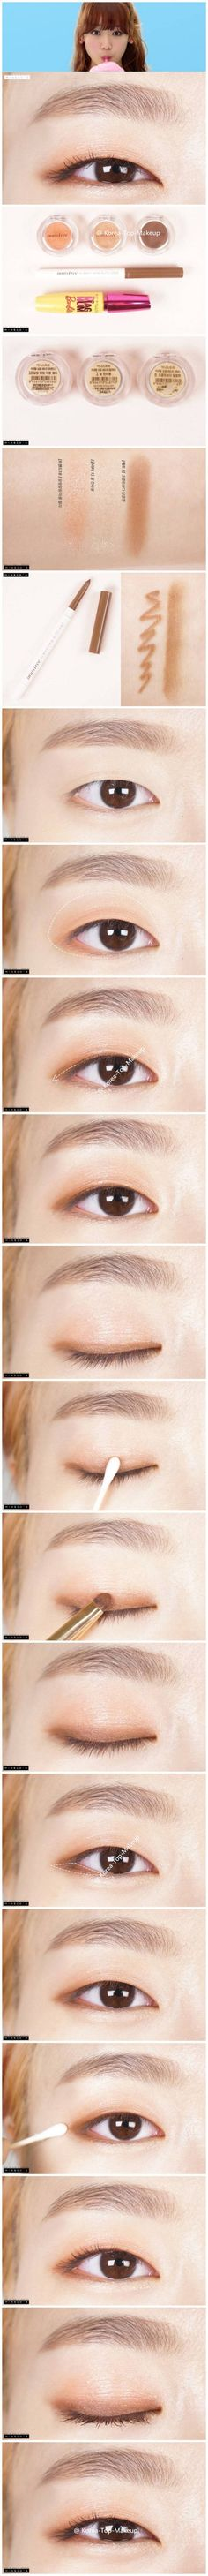 Korean style make up #make up #idea